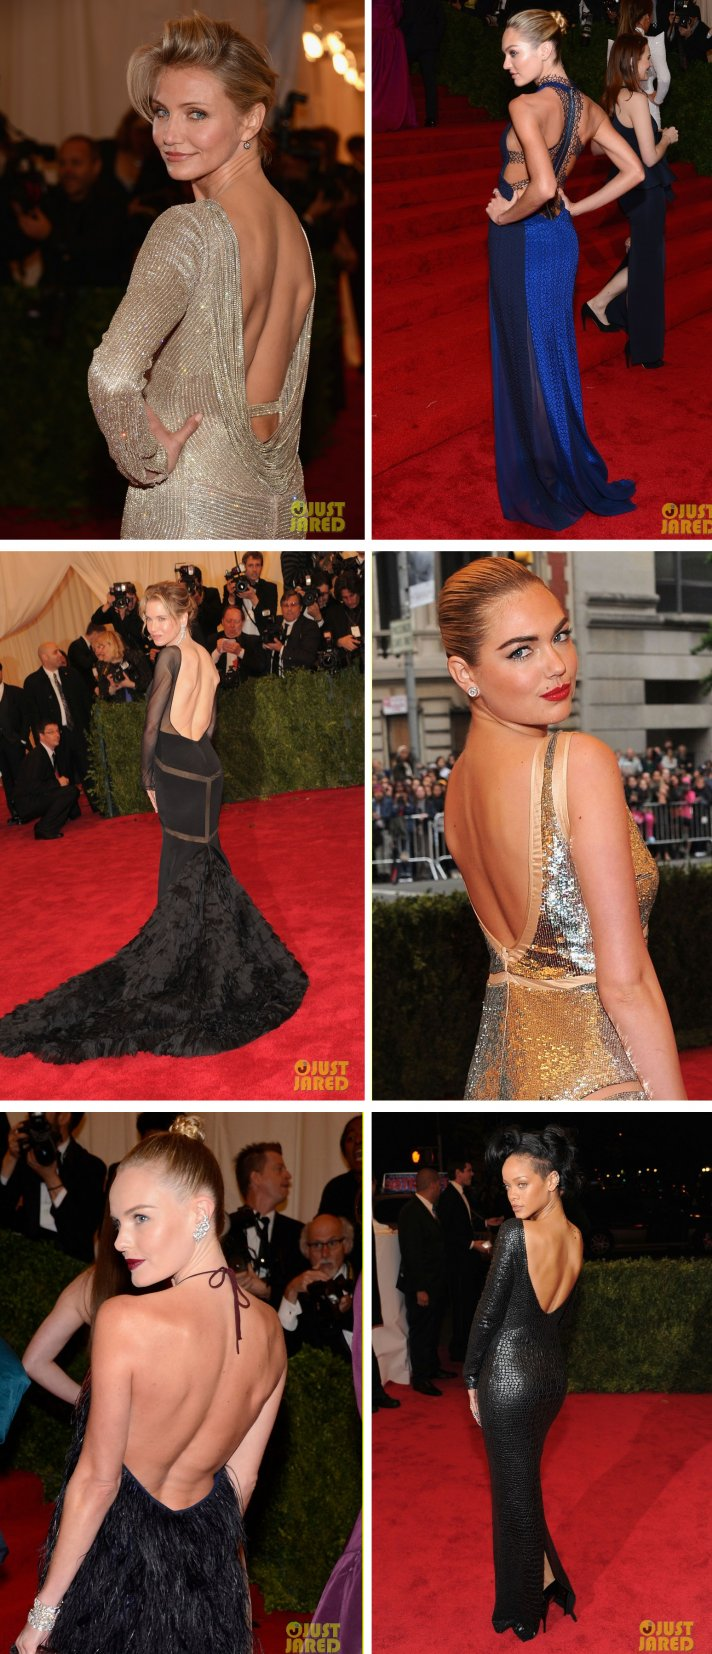 met ball 2012 bridal style trends open backs LWD